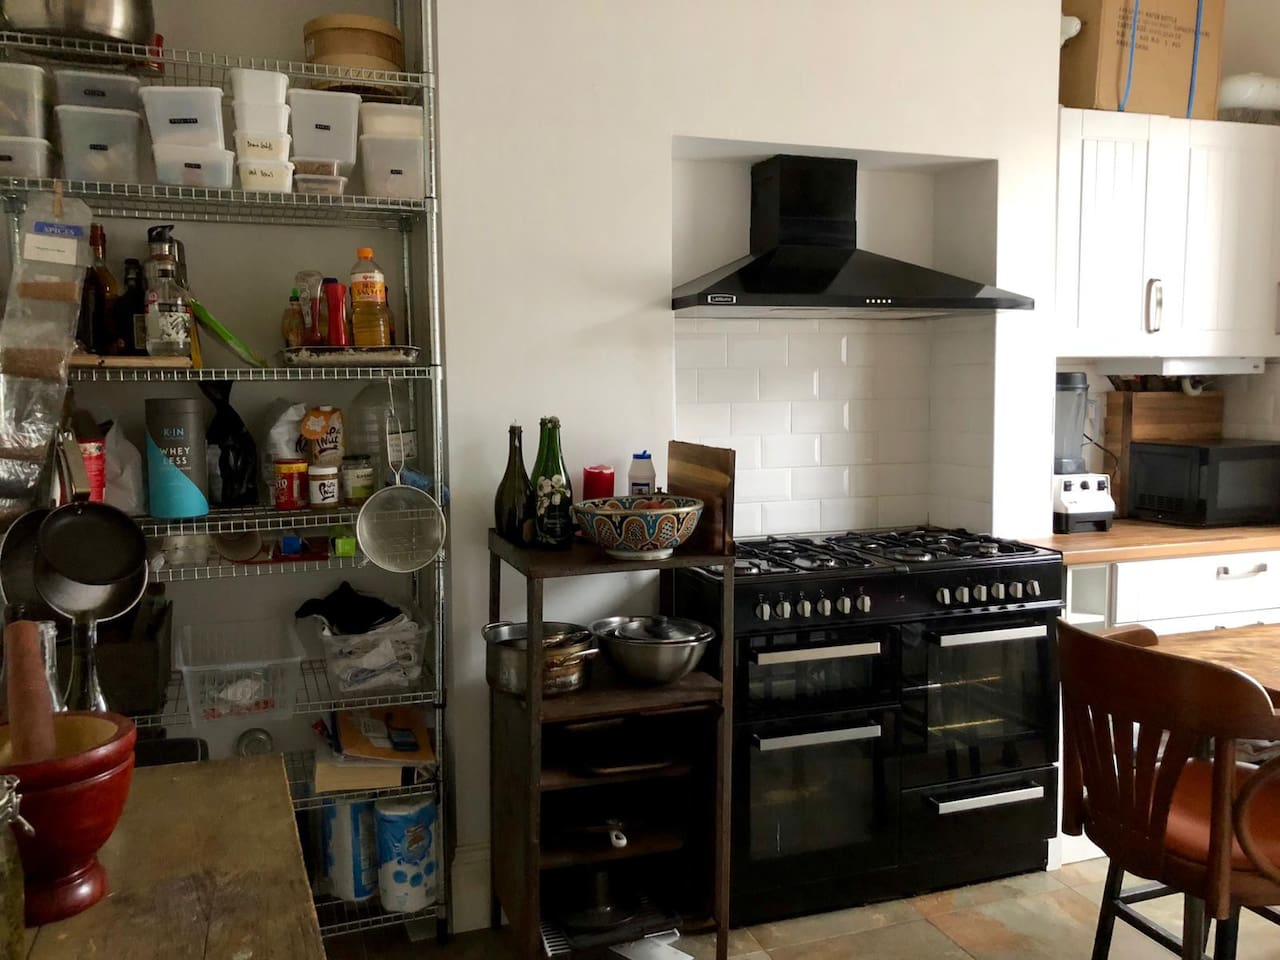 Well stocked communal kitchen with 8 burner stove, Vitamix, 2 ovens...